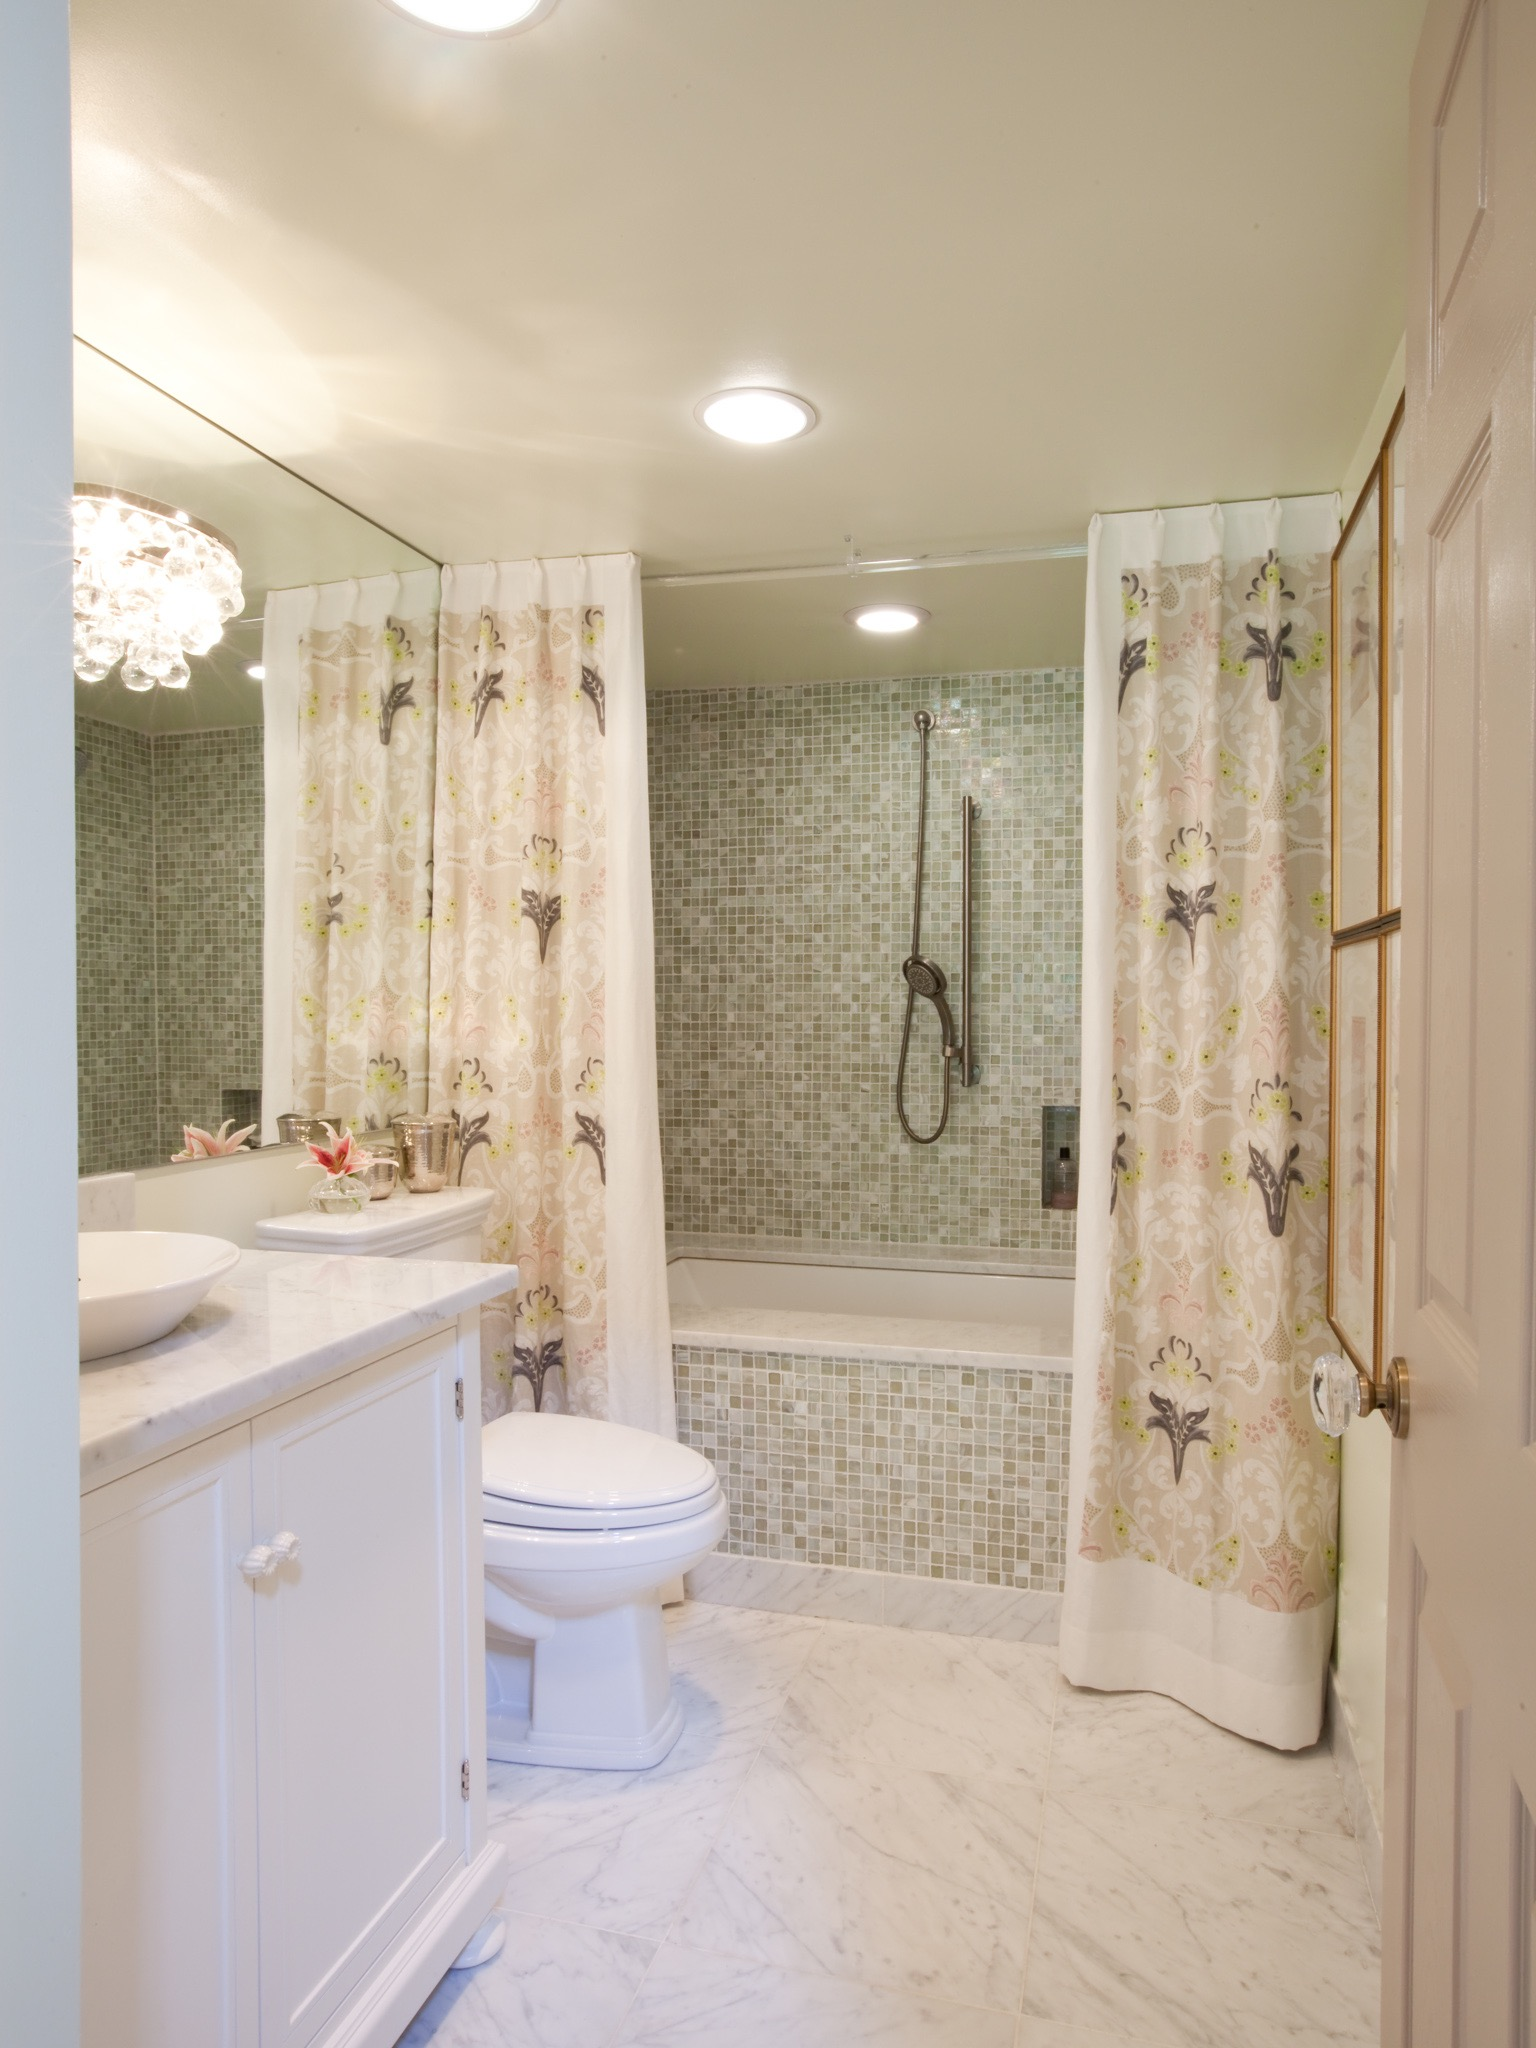 Small Bathroom With Mosaic Tile And Lavender Print Shower Curtain (Image 11 of 14)